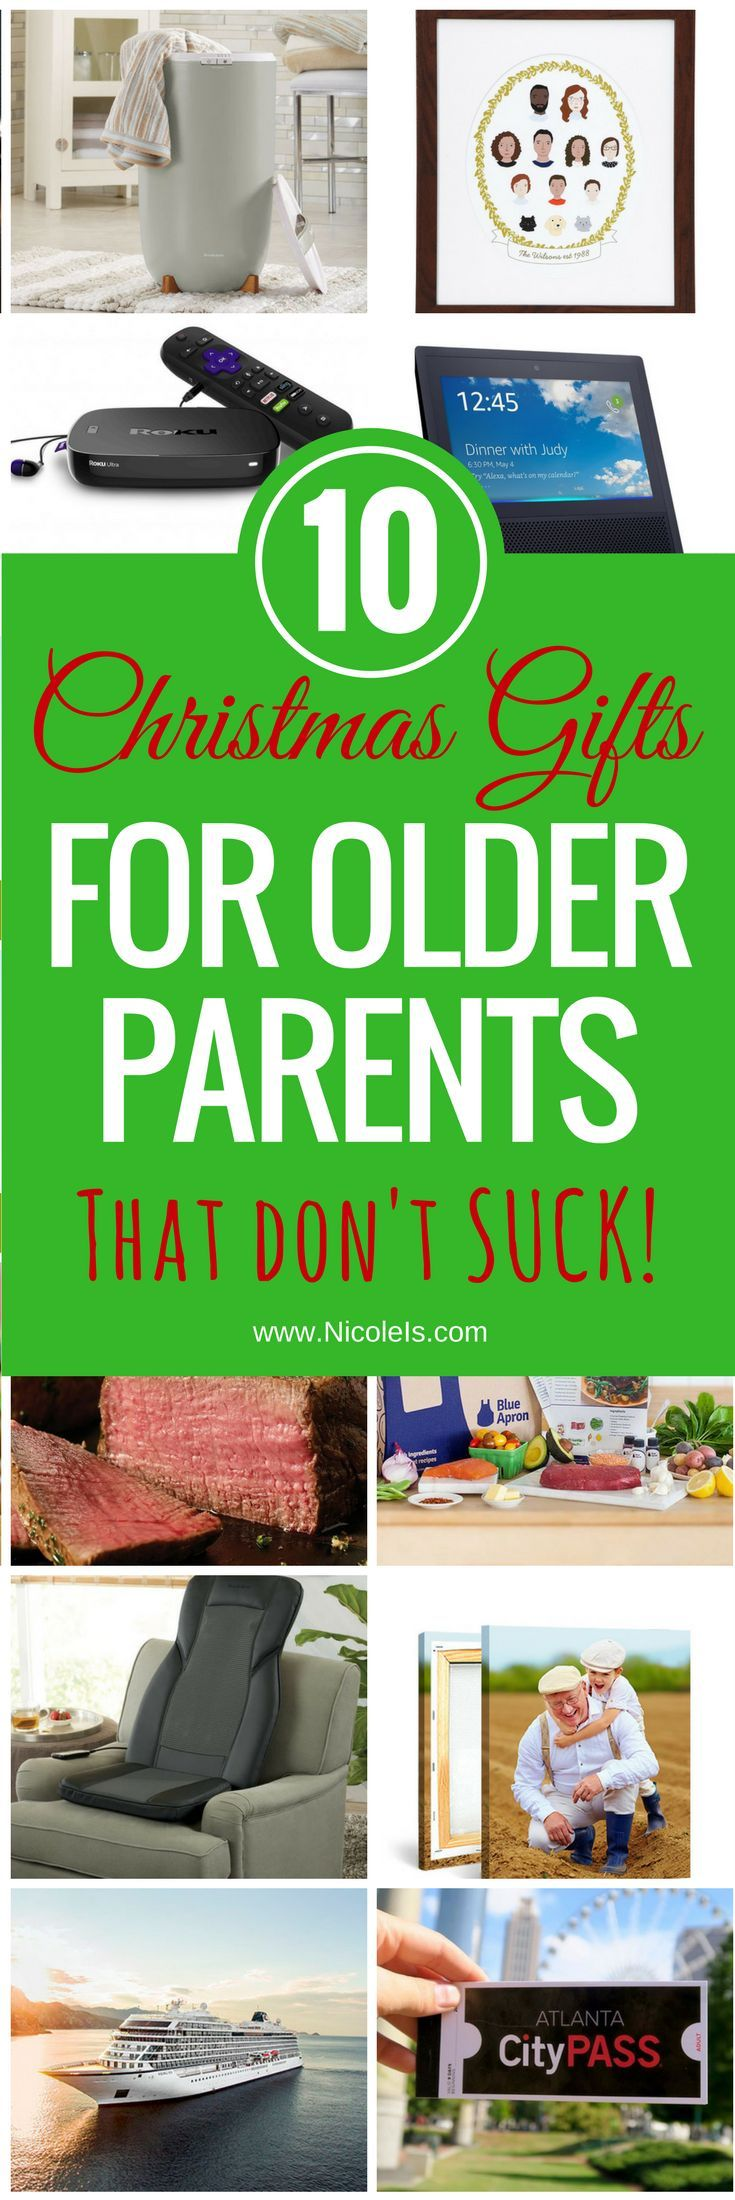 10 christmas gifts for older parents that dont suck dad christmas gifts mom christmas gifts and family christmas gifts - Christmas Gifts For Older Parents